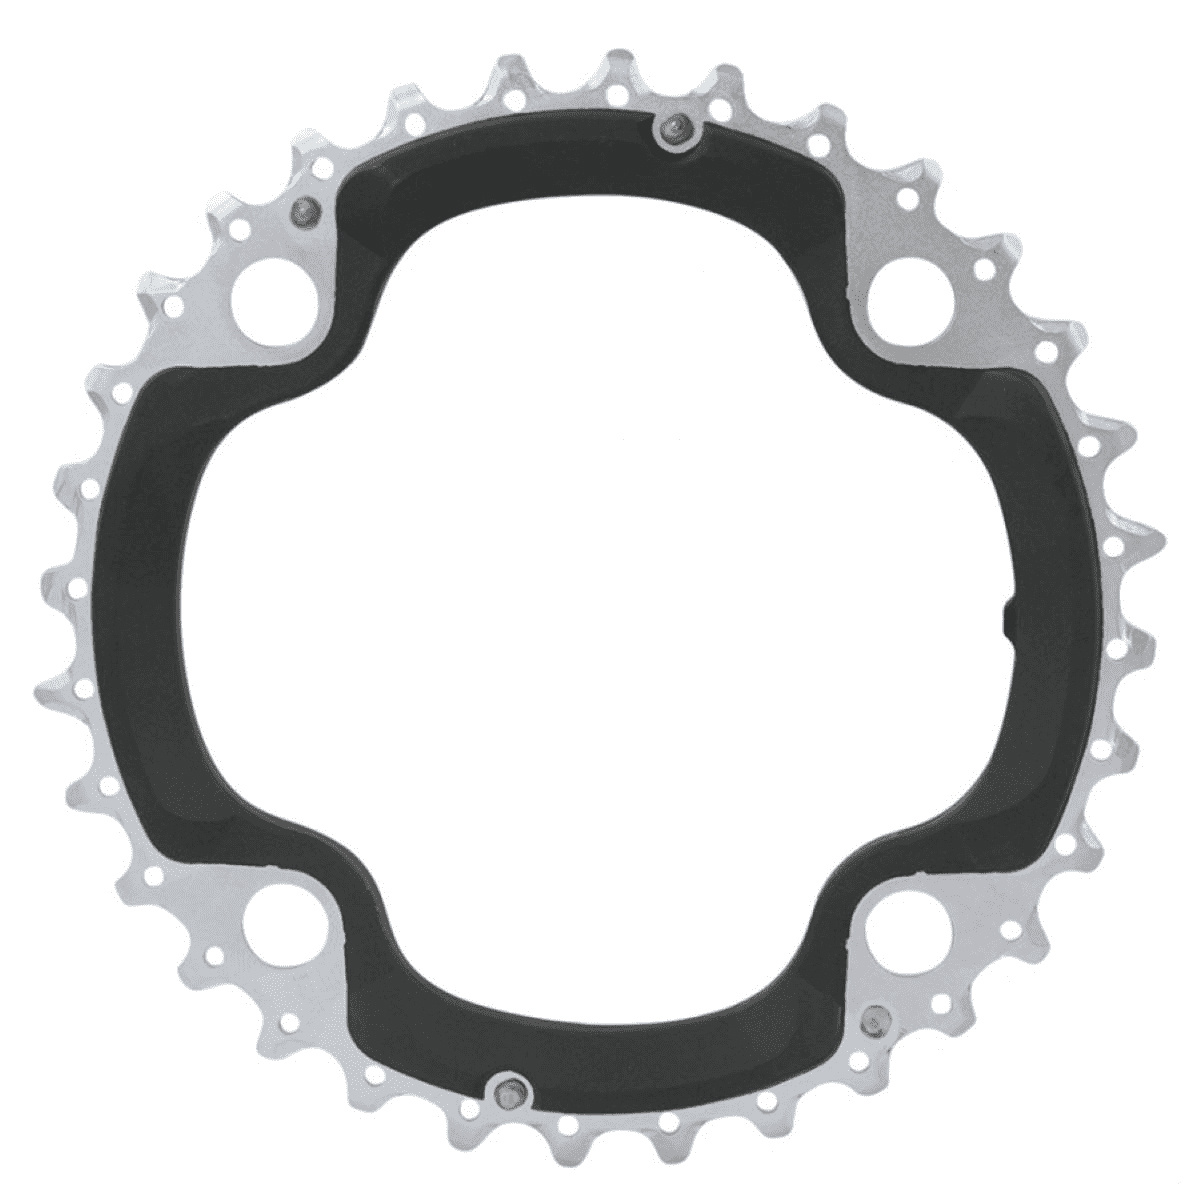 Shimano XT M770/780 10 Speed Chainring - 32t